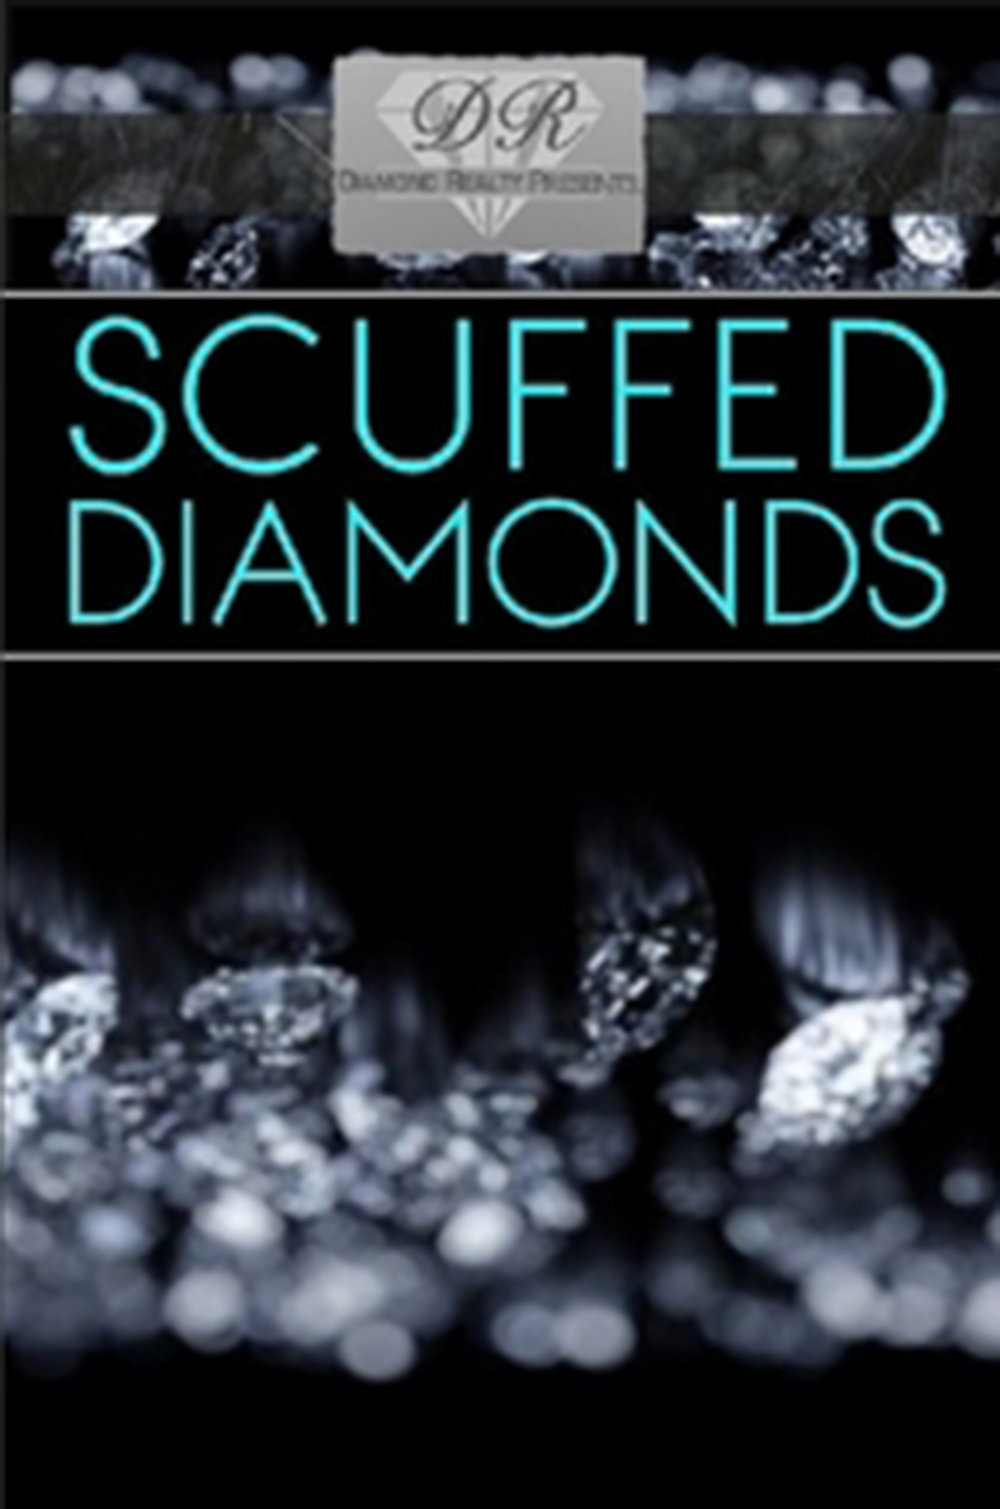 scuffed-diamonds.jpg